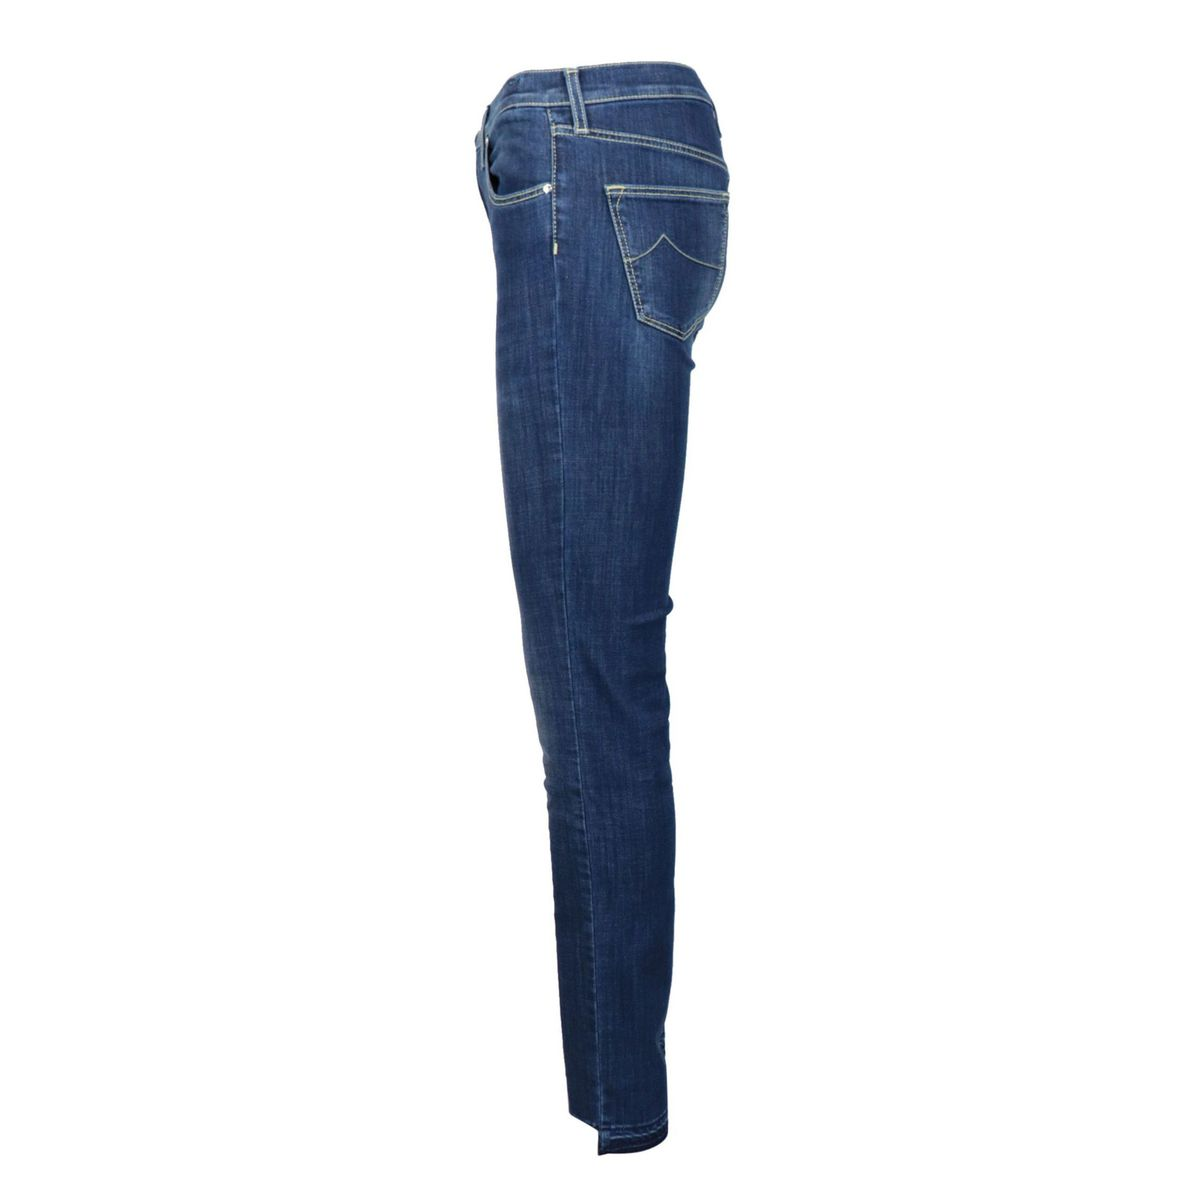 5-pocket Kimberly Slim jeans in dark denim Dark denim Jacob Cohen